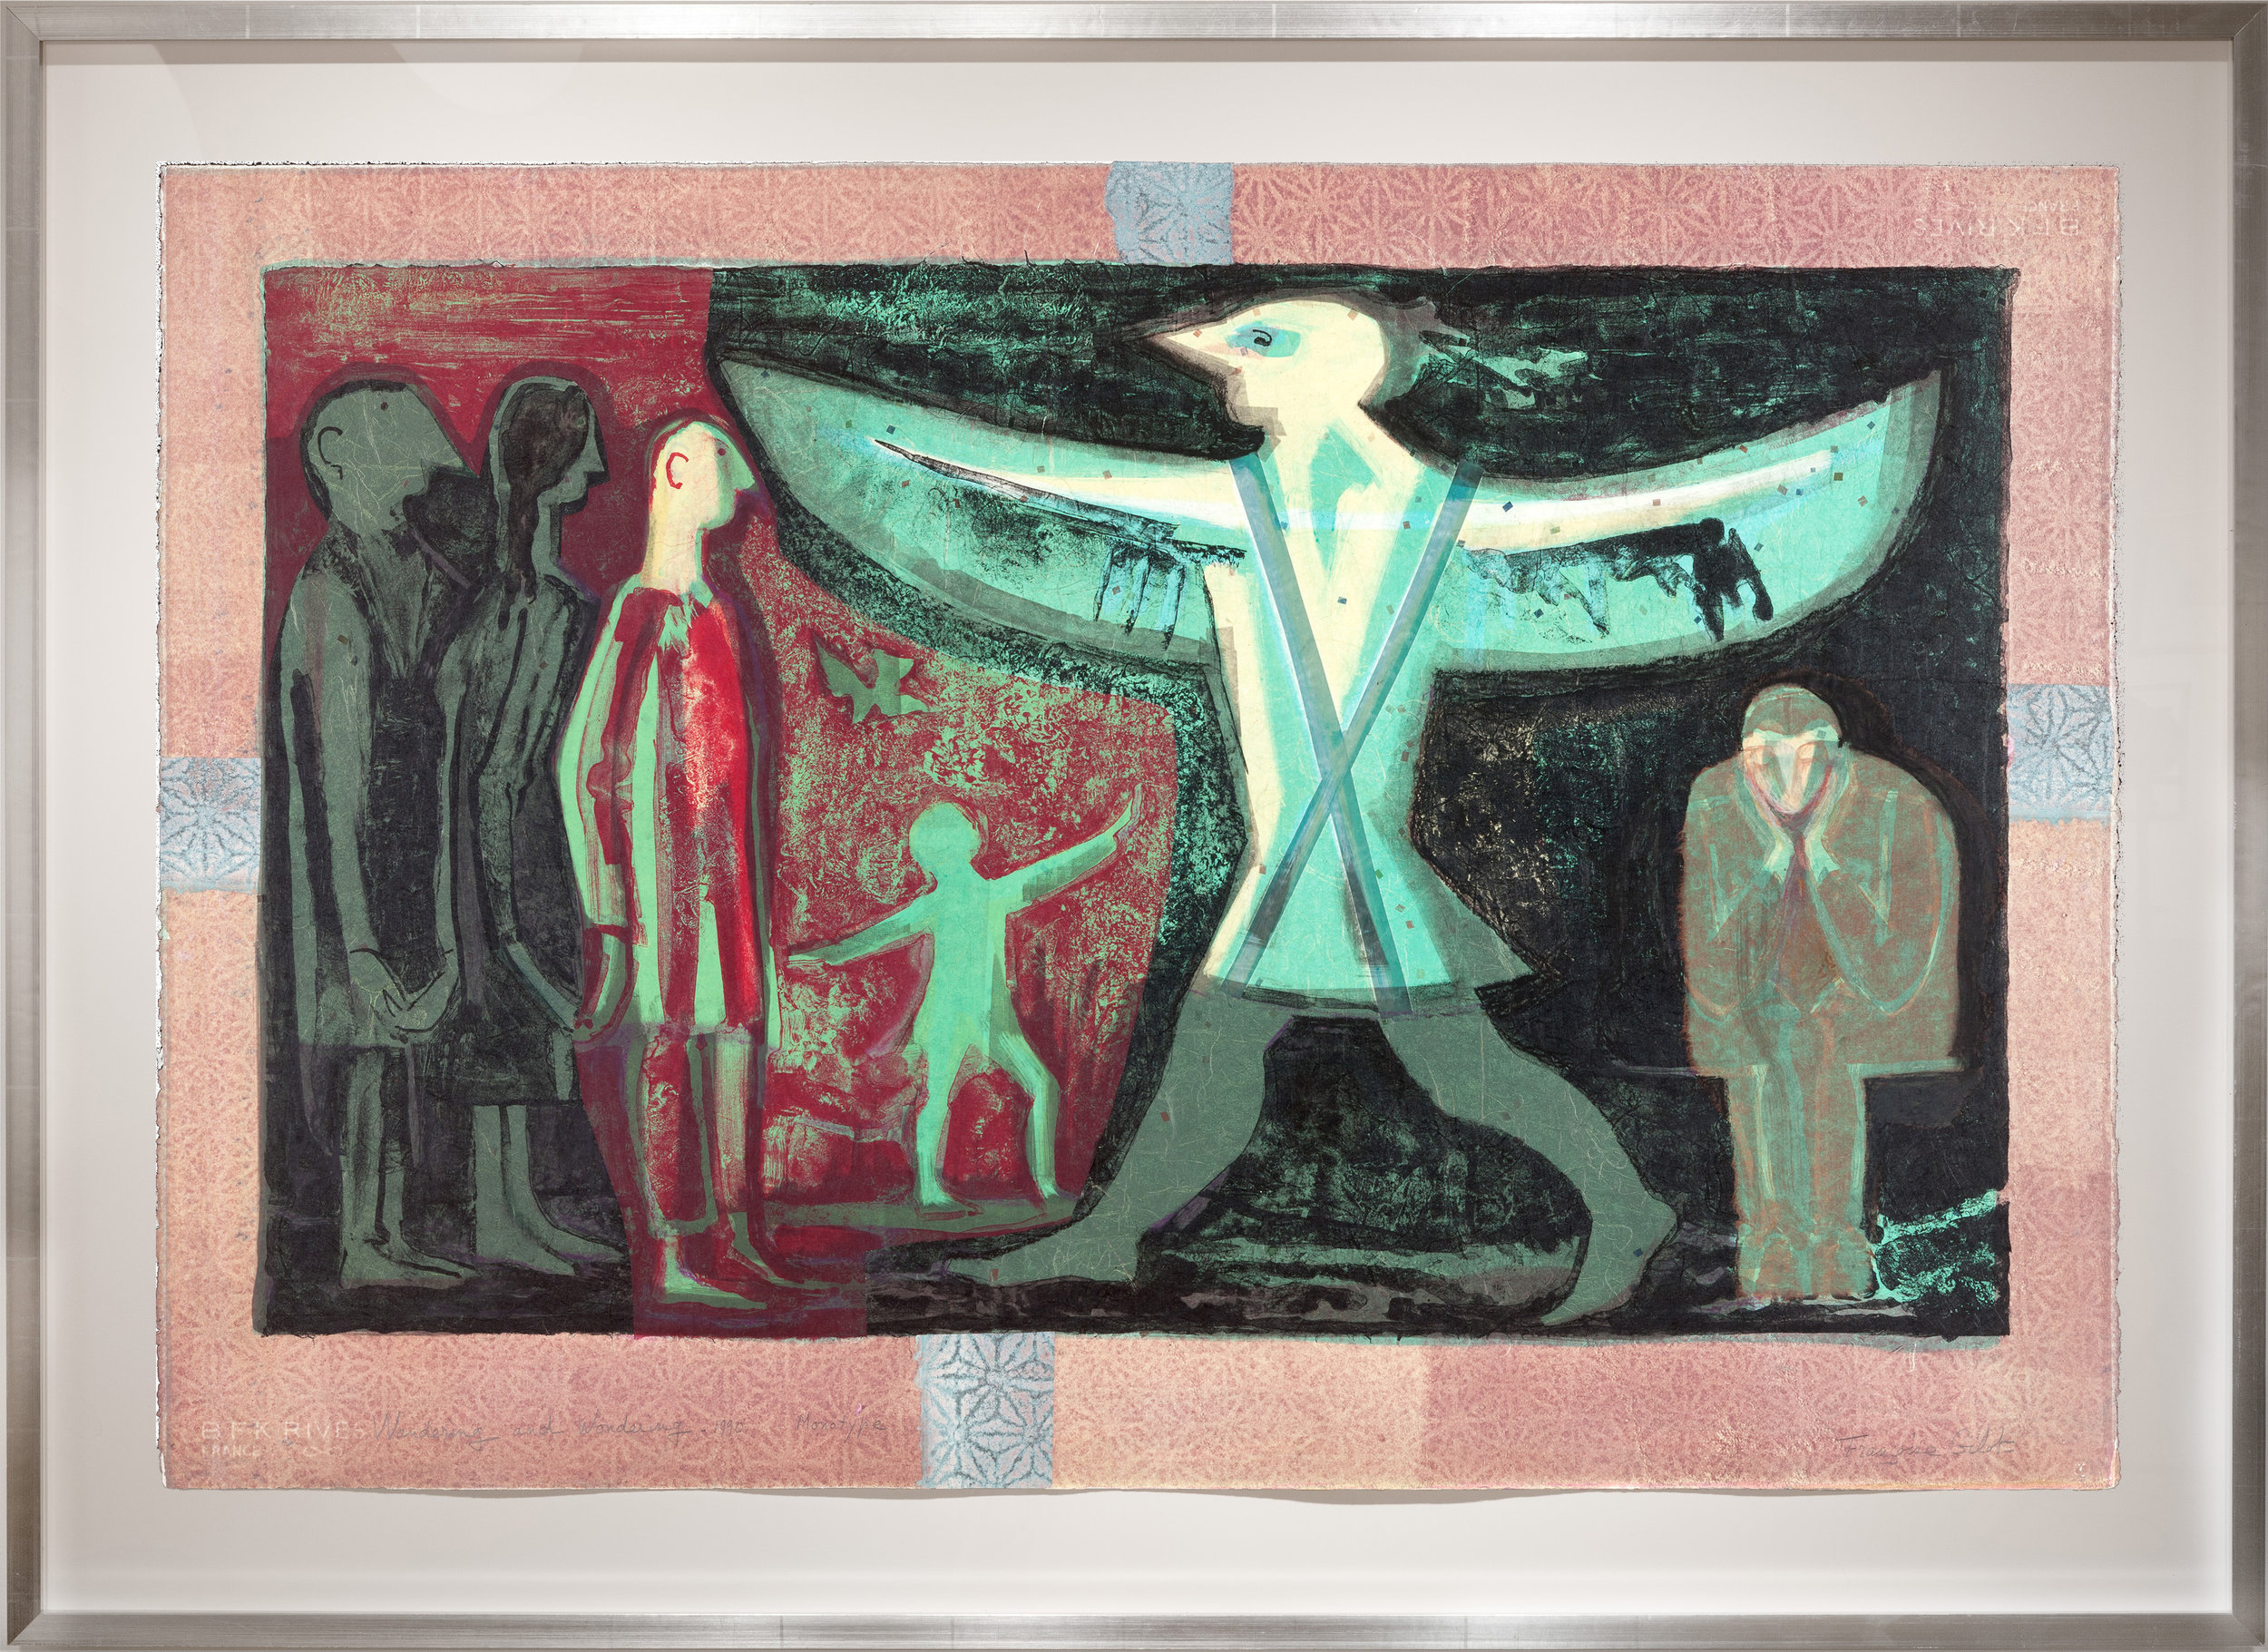 """Wandering & Wondering  (1990) Monotype on Rives paper,  Signed L/R (titled L/L, annotated """"Monotype"""" L/C)  Sheet size: 30 x 44"""" Framed: 37.25 x 51.5"""""""